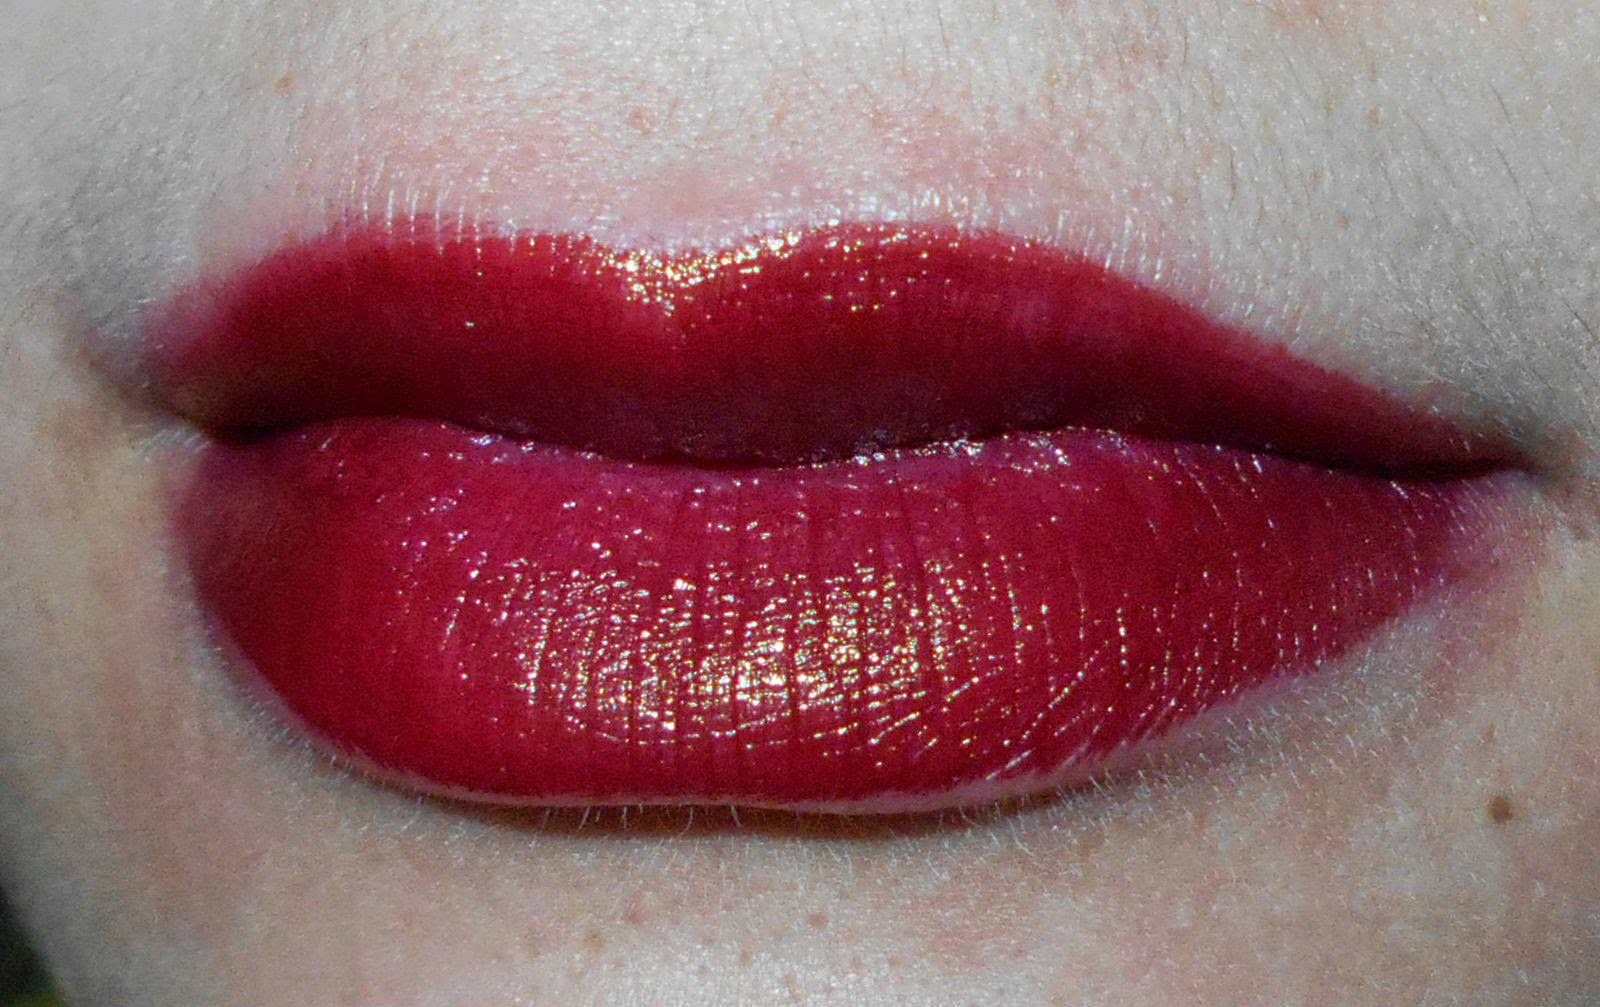 Milani Color Statement Lipsticks in Cabaret Blend